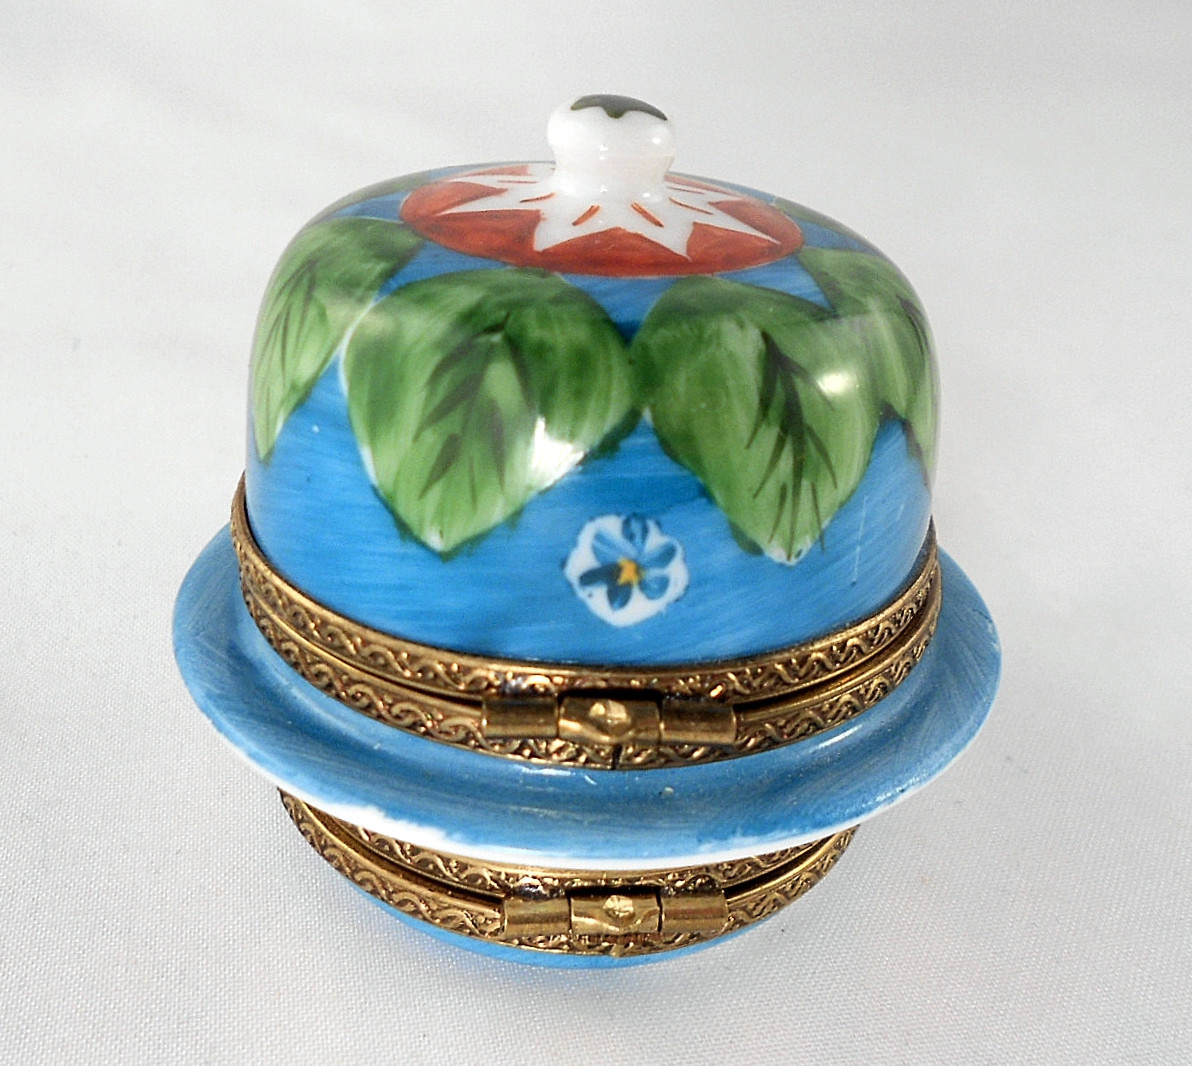 Limoges Box - Double Hinged Cheese Dome with Milk Can - Peint Main